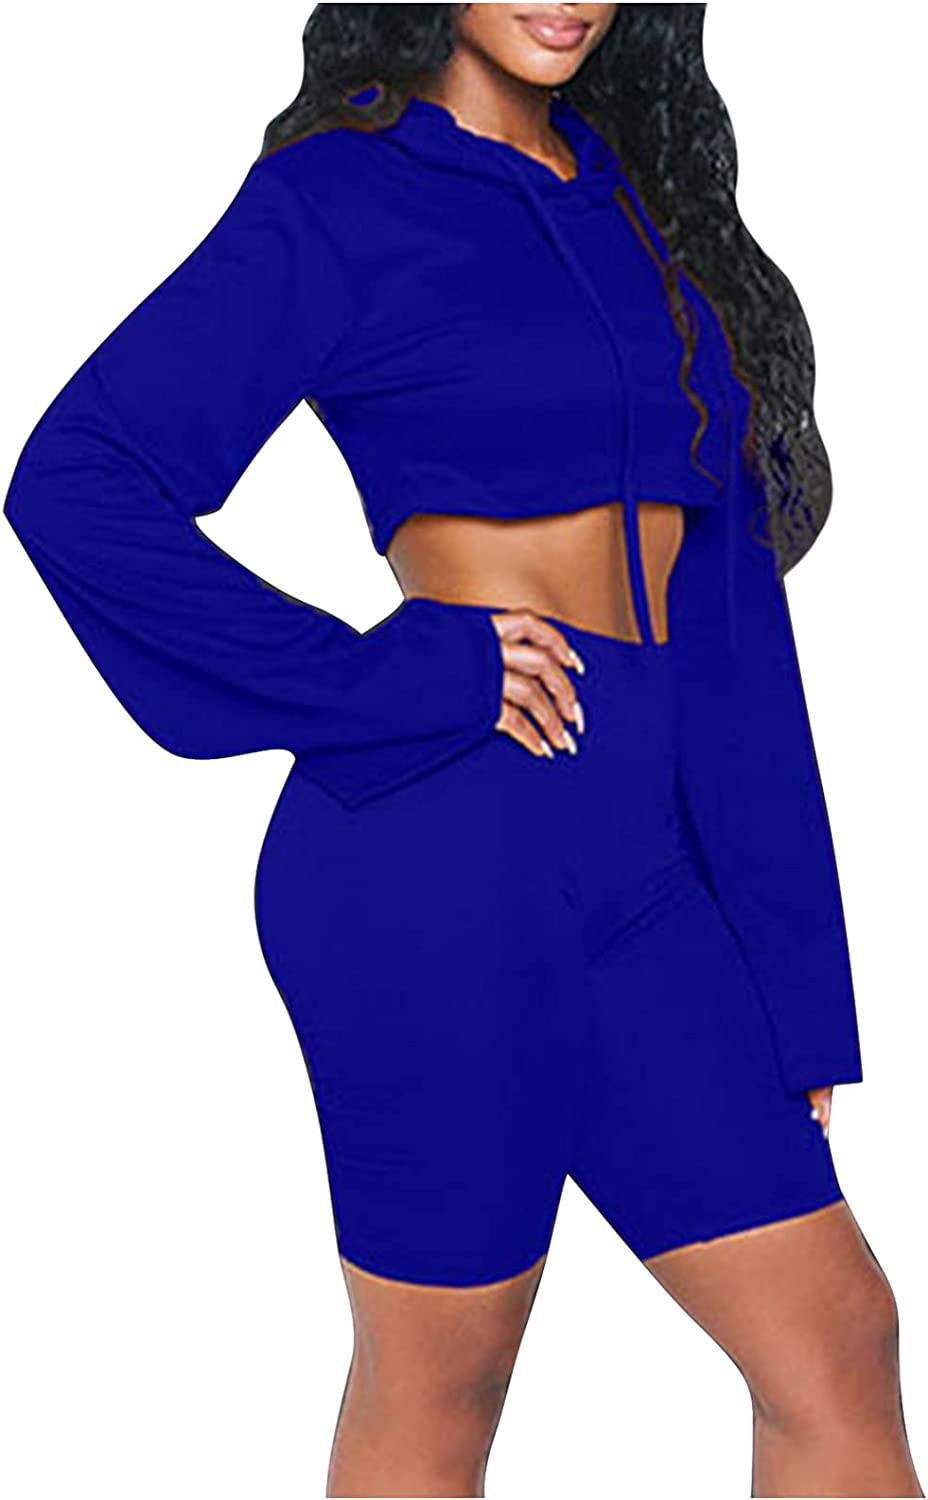 Women Suits Sets, Women Fashion Casual Solid Color Hooded Long Sleeves 2 Piece Sports Suit